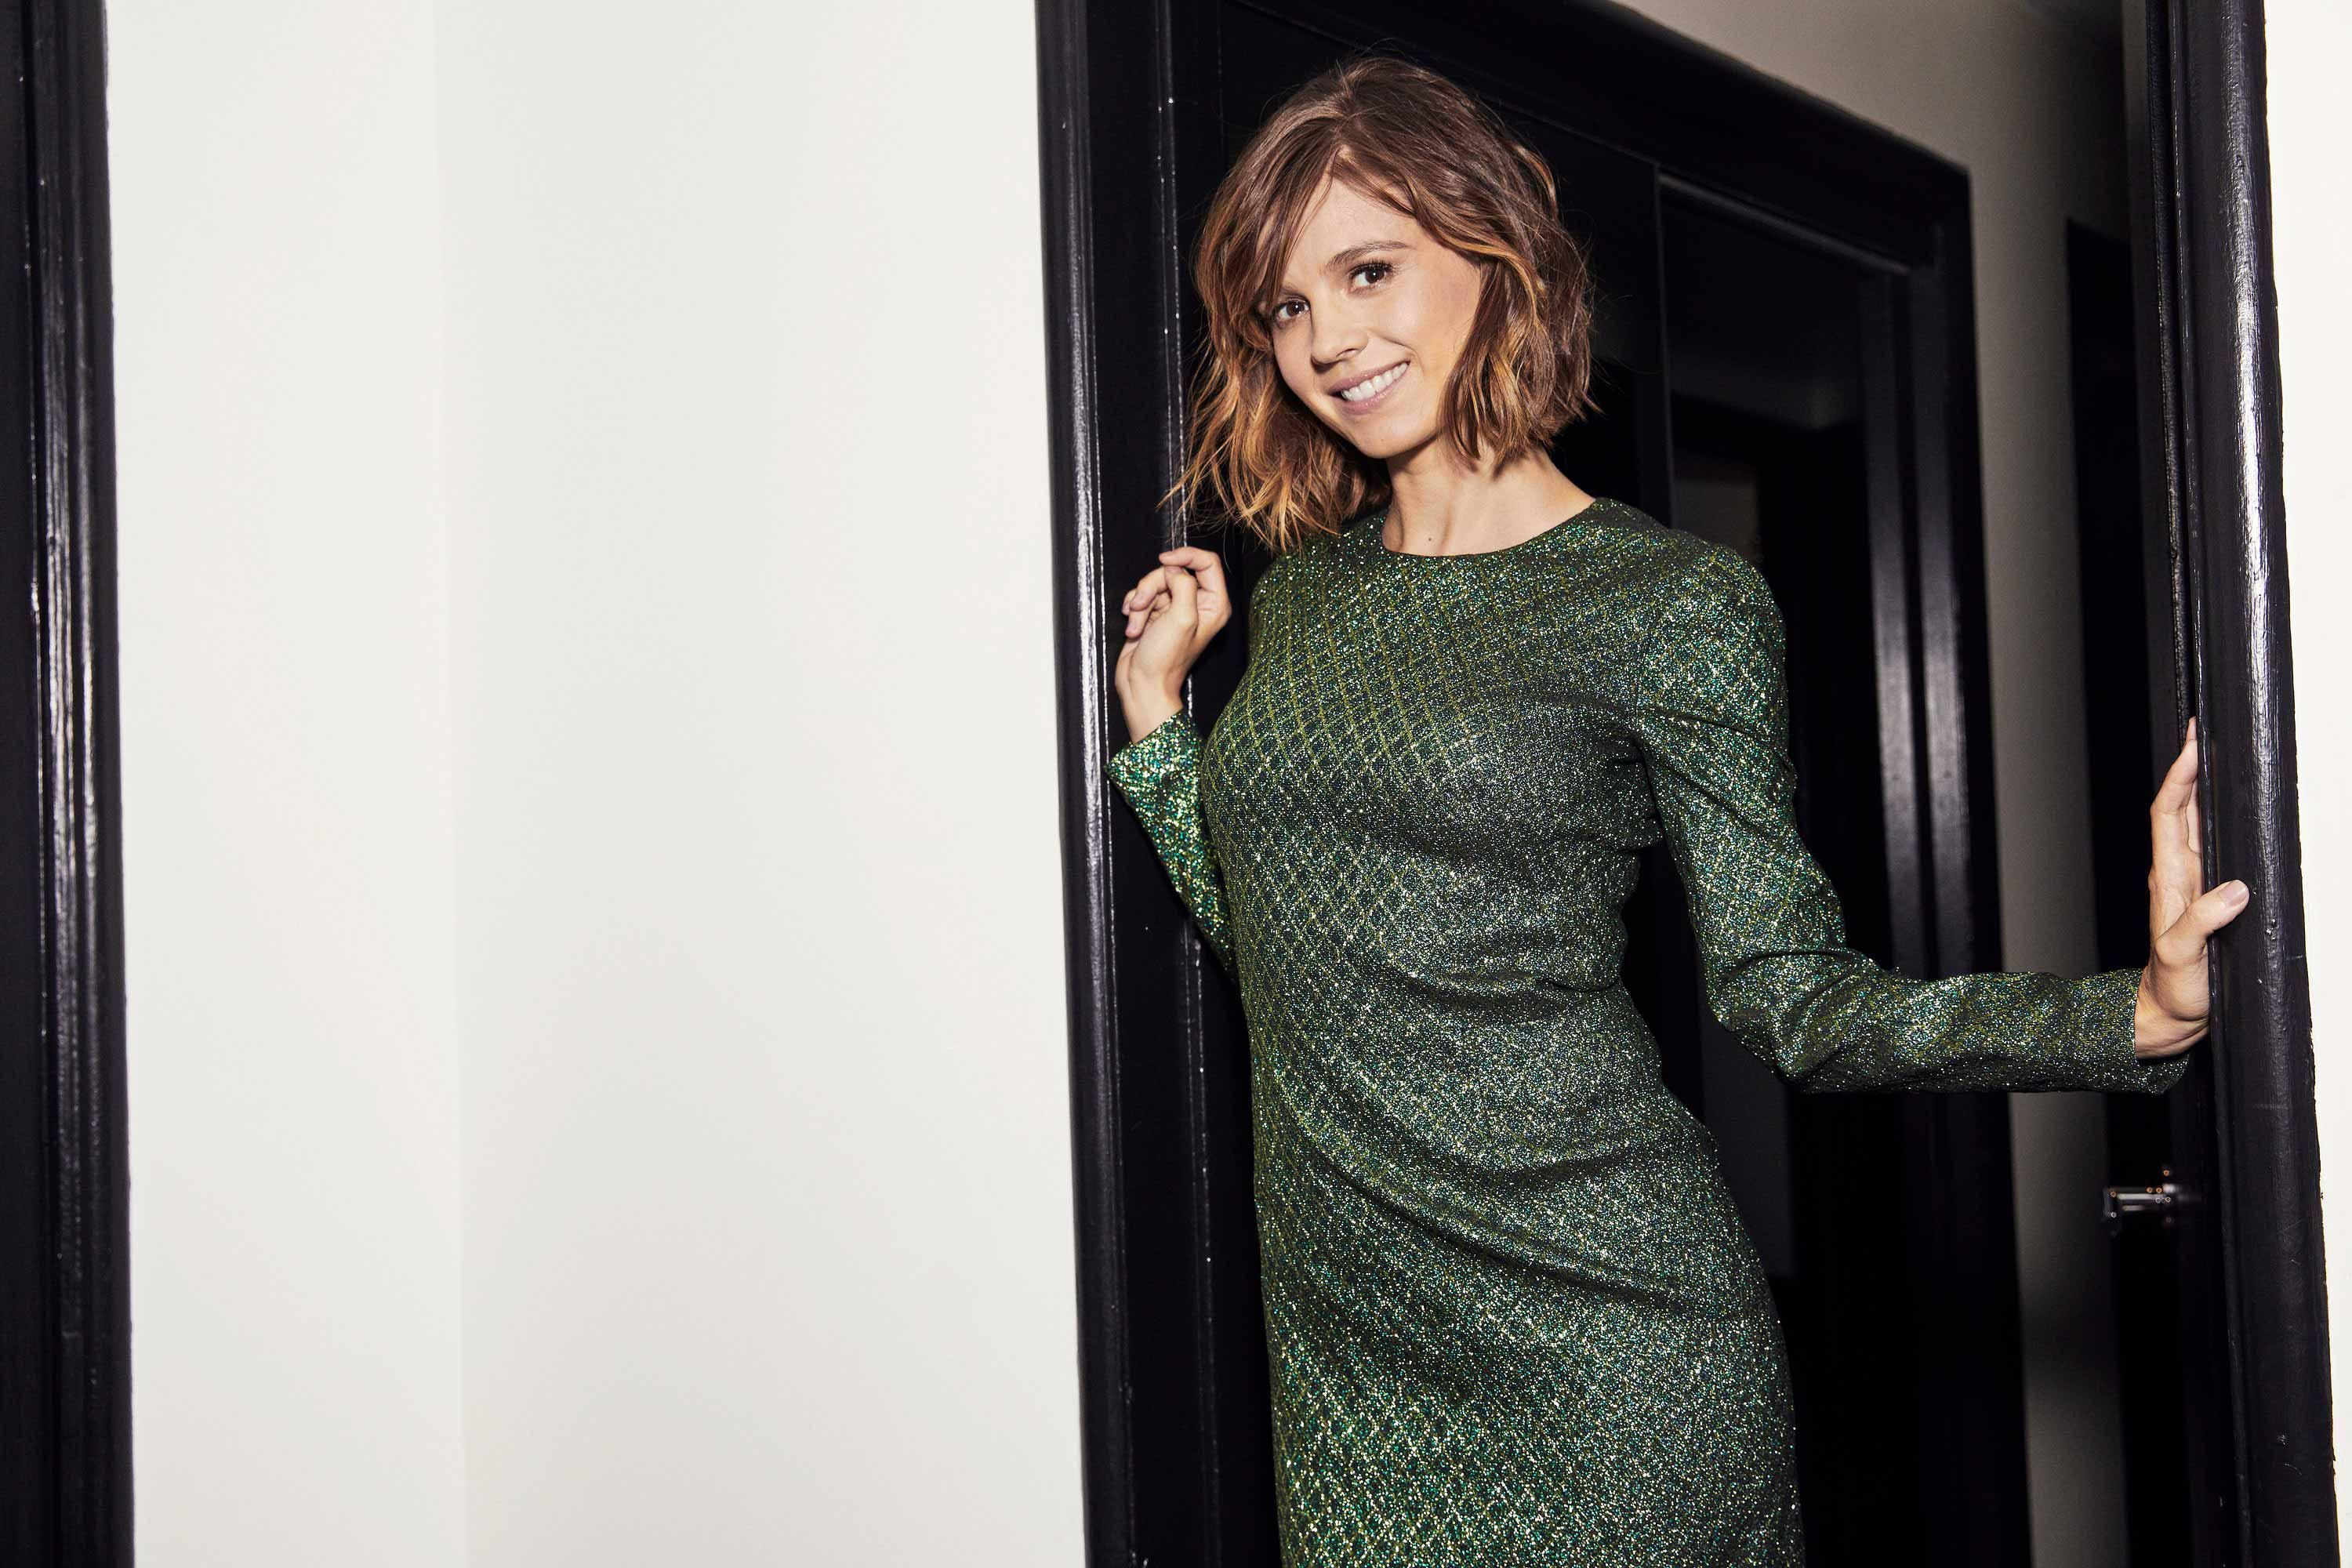 Katja Herbers poses in a fitted green dress